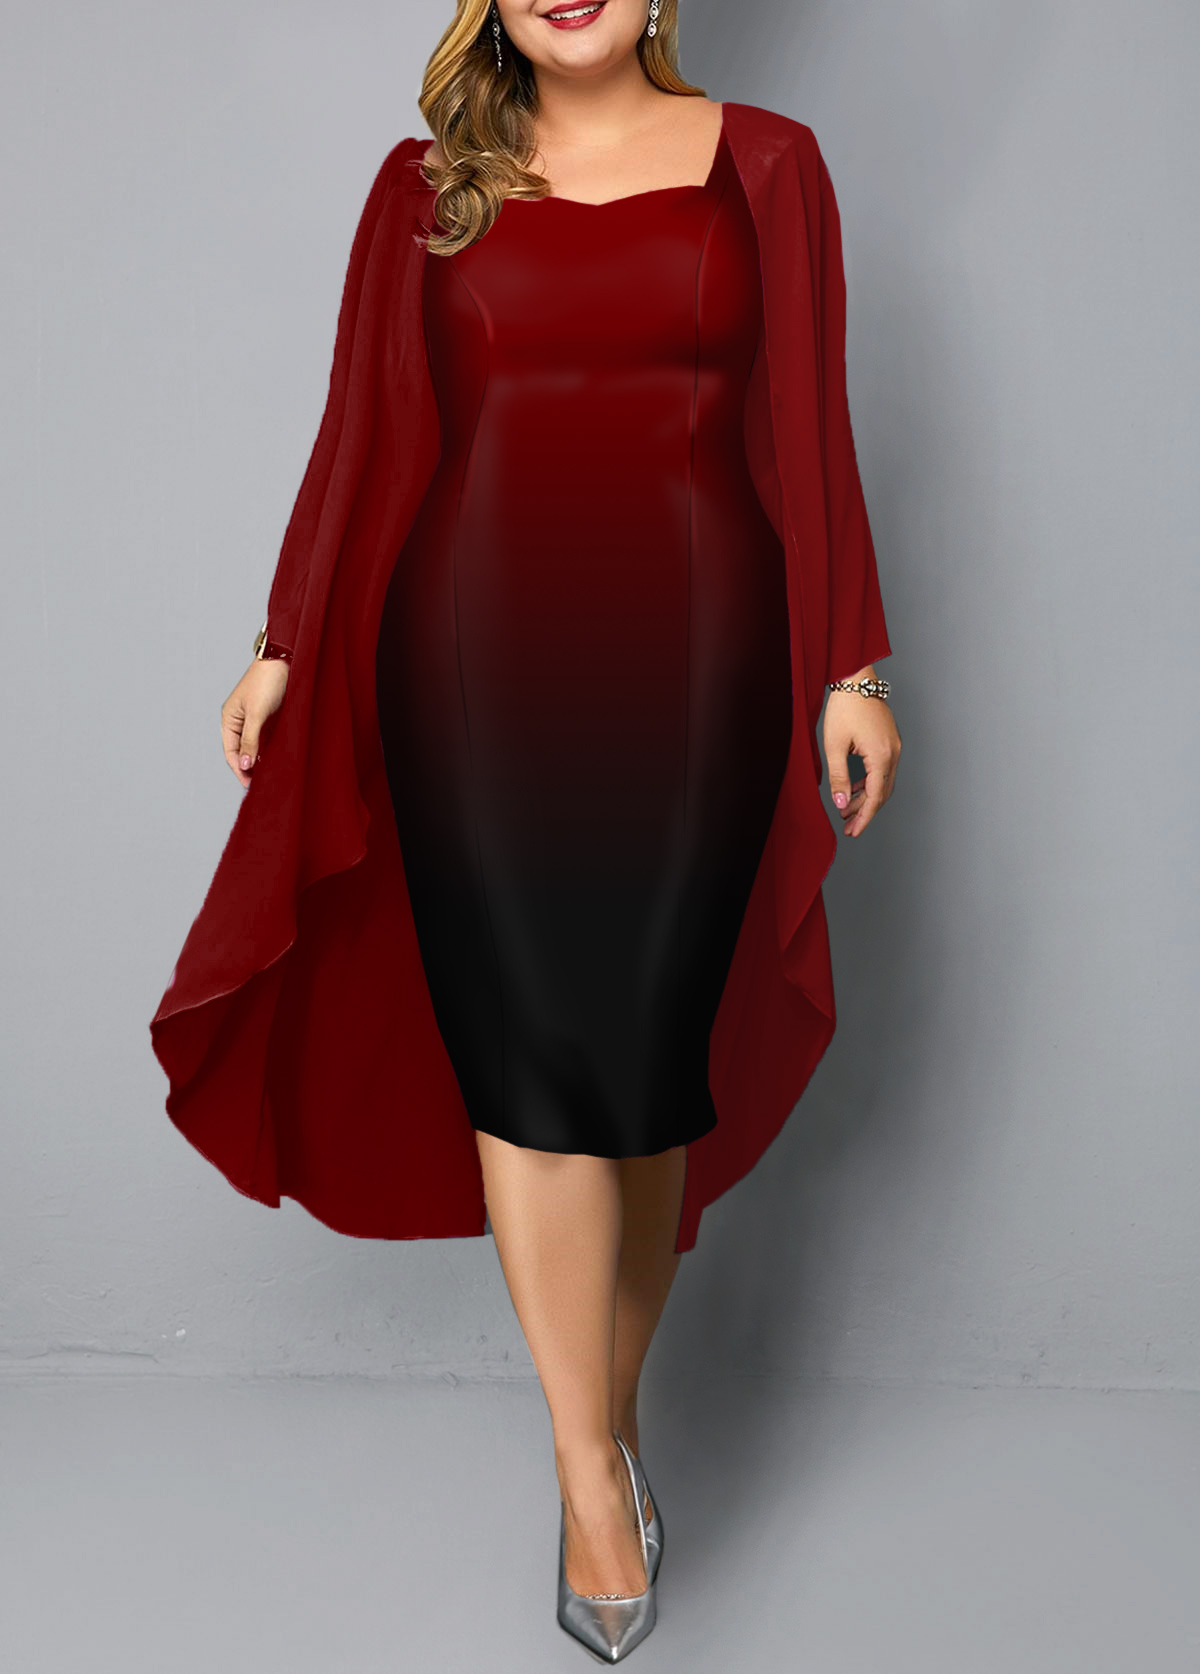 Red Chiffon Cardigan and Gradient Plus Size Dress